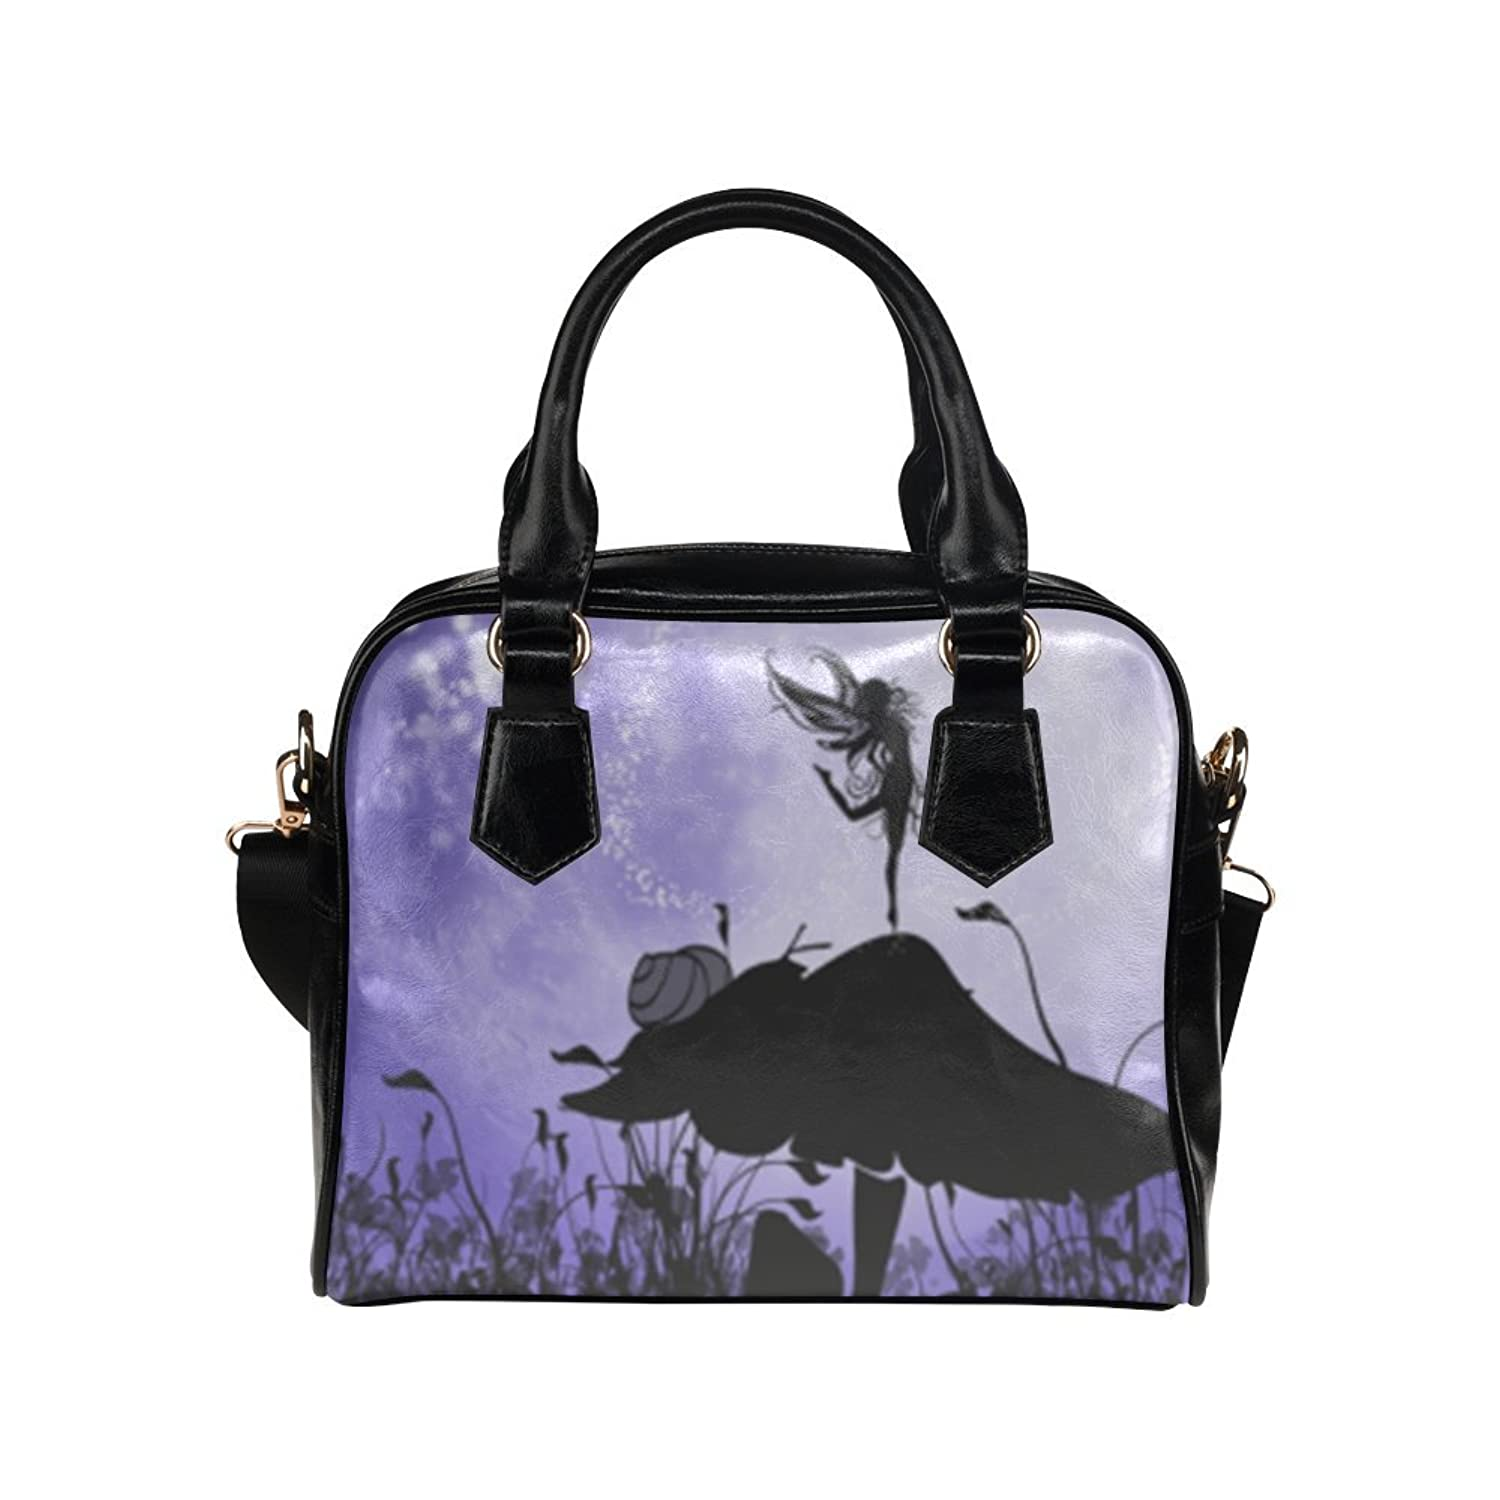 deardaling A beautiful fairy dancing on a mushroom silhouette Custom Leather Canvas Handbag /Tote Bag /Shoulder Bag for Women(Twin Sides)